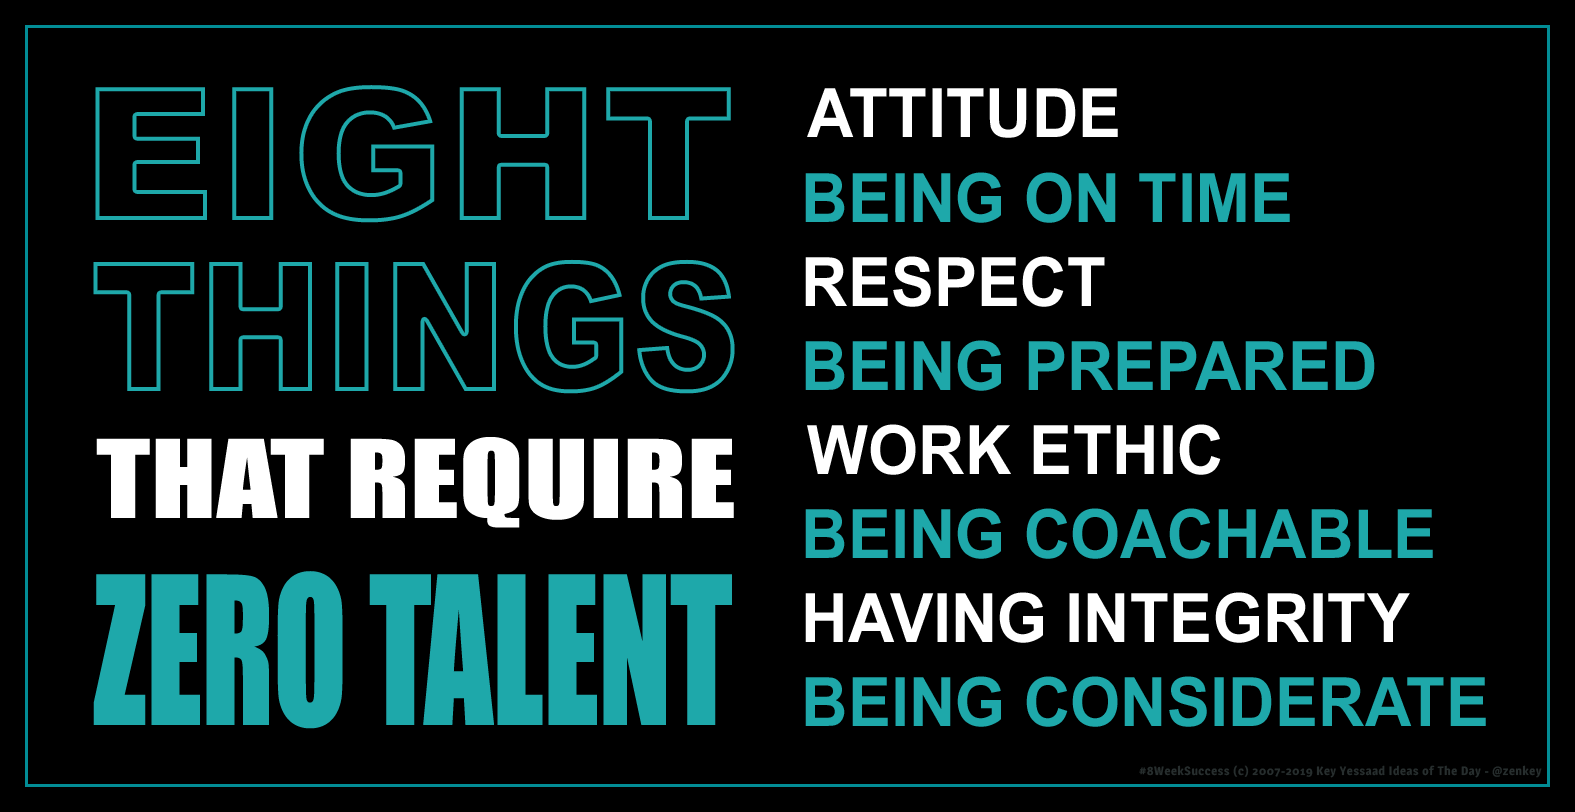 8 Things that Require Zero Talent